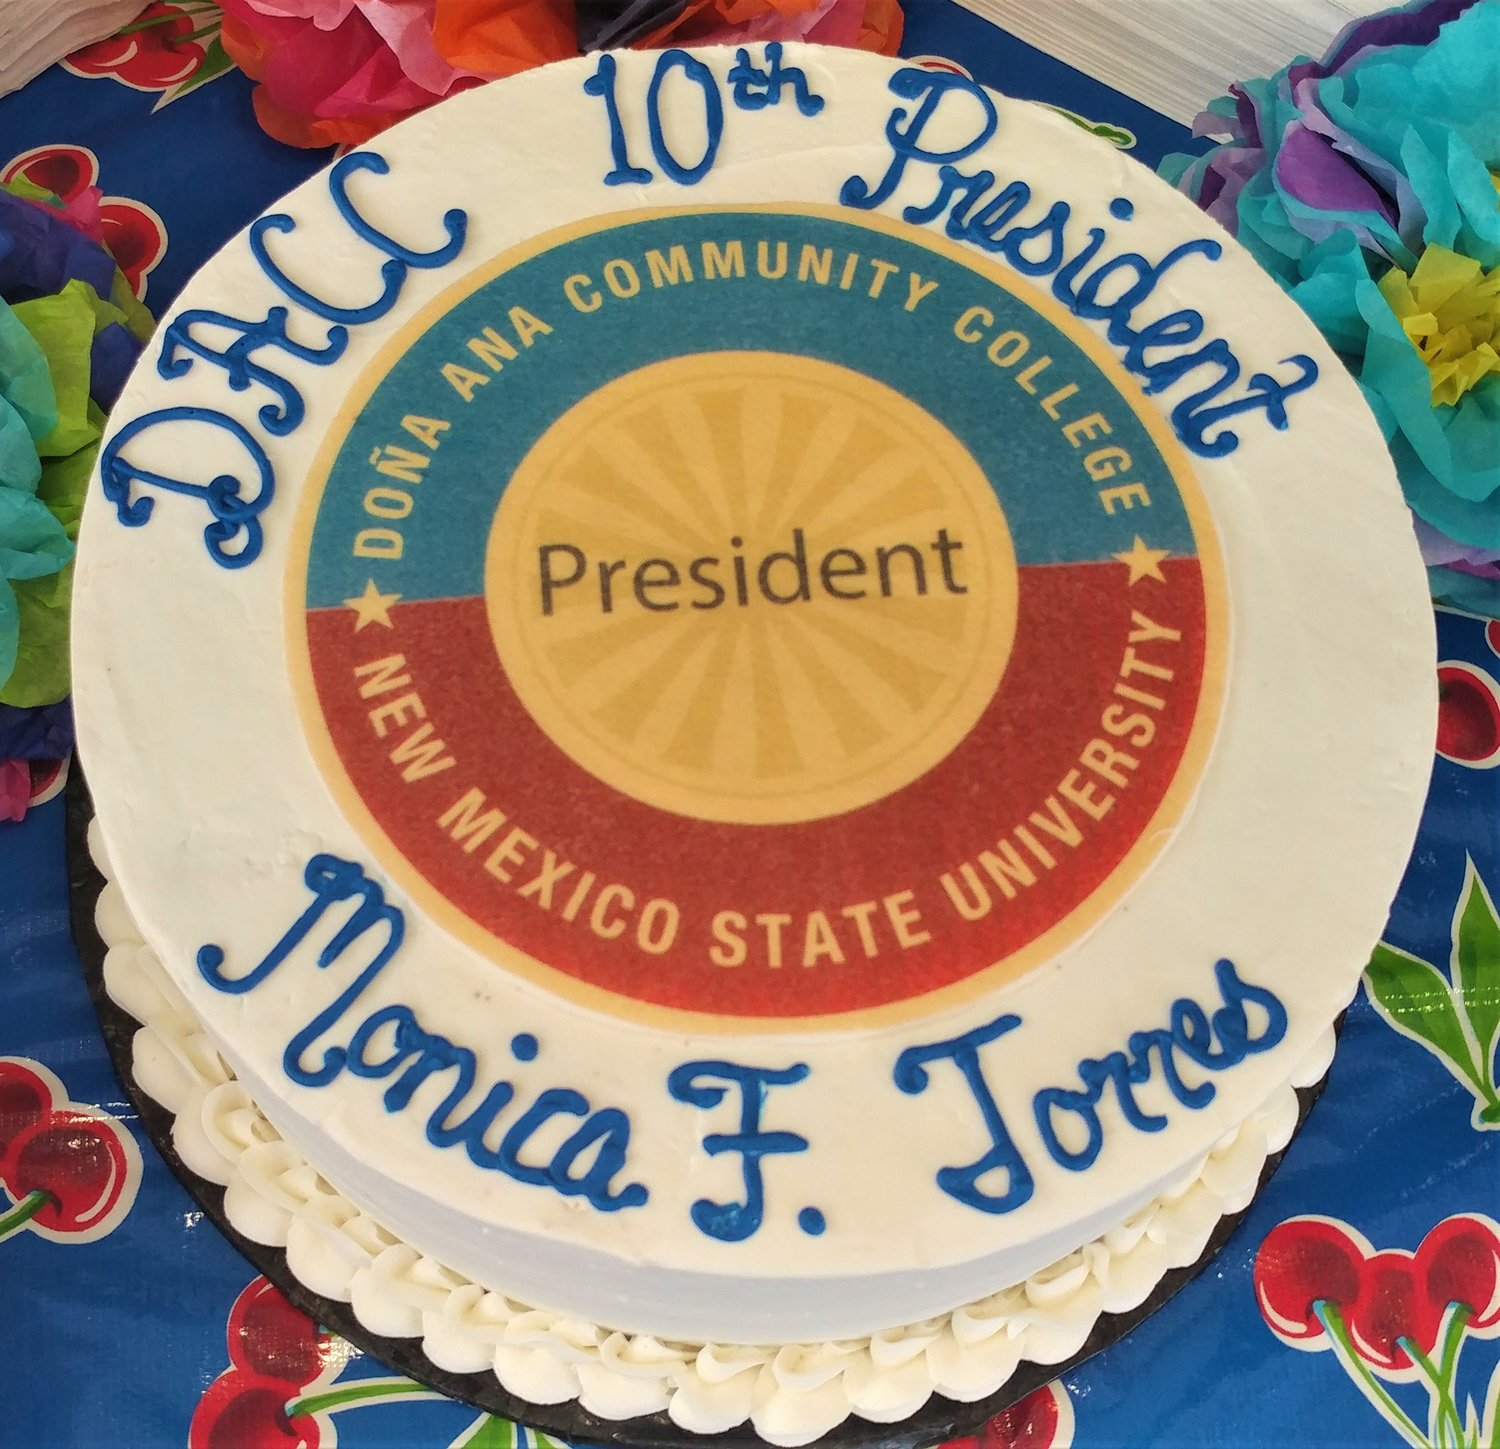 The cake honoring new Doña Ana Community College president Monica Torres.